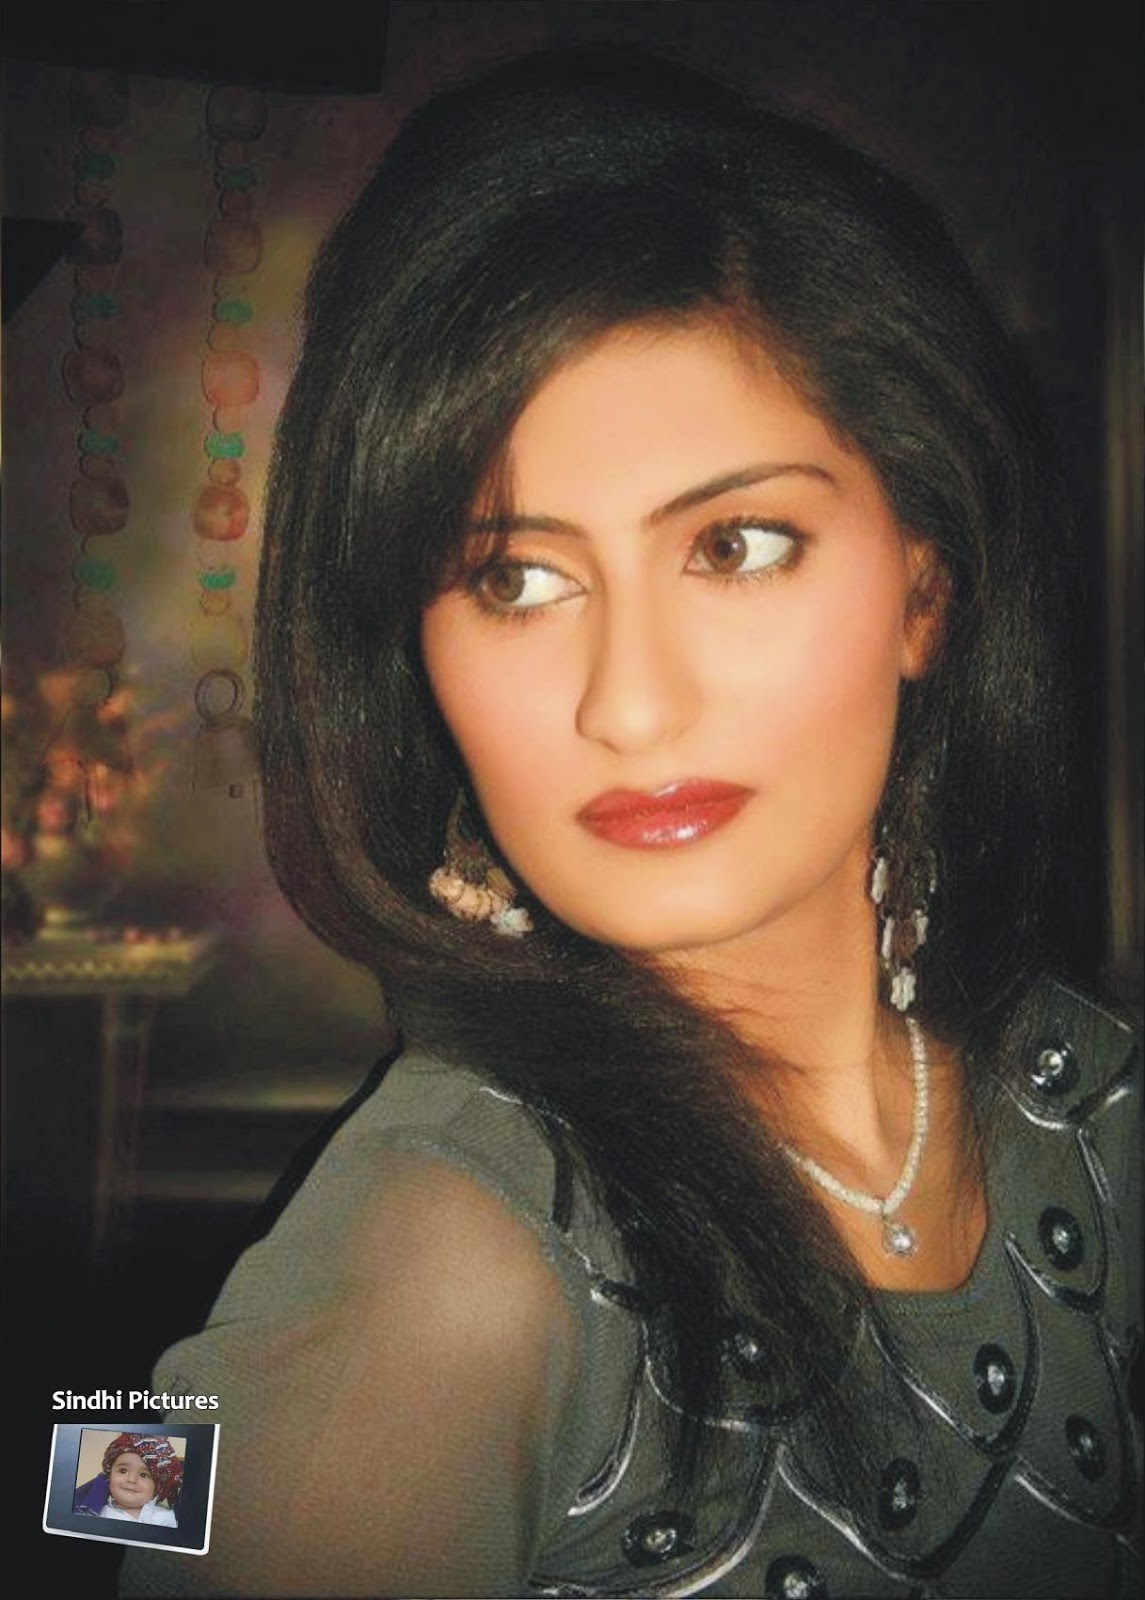 Can recommend Hot sindhi girls pictures